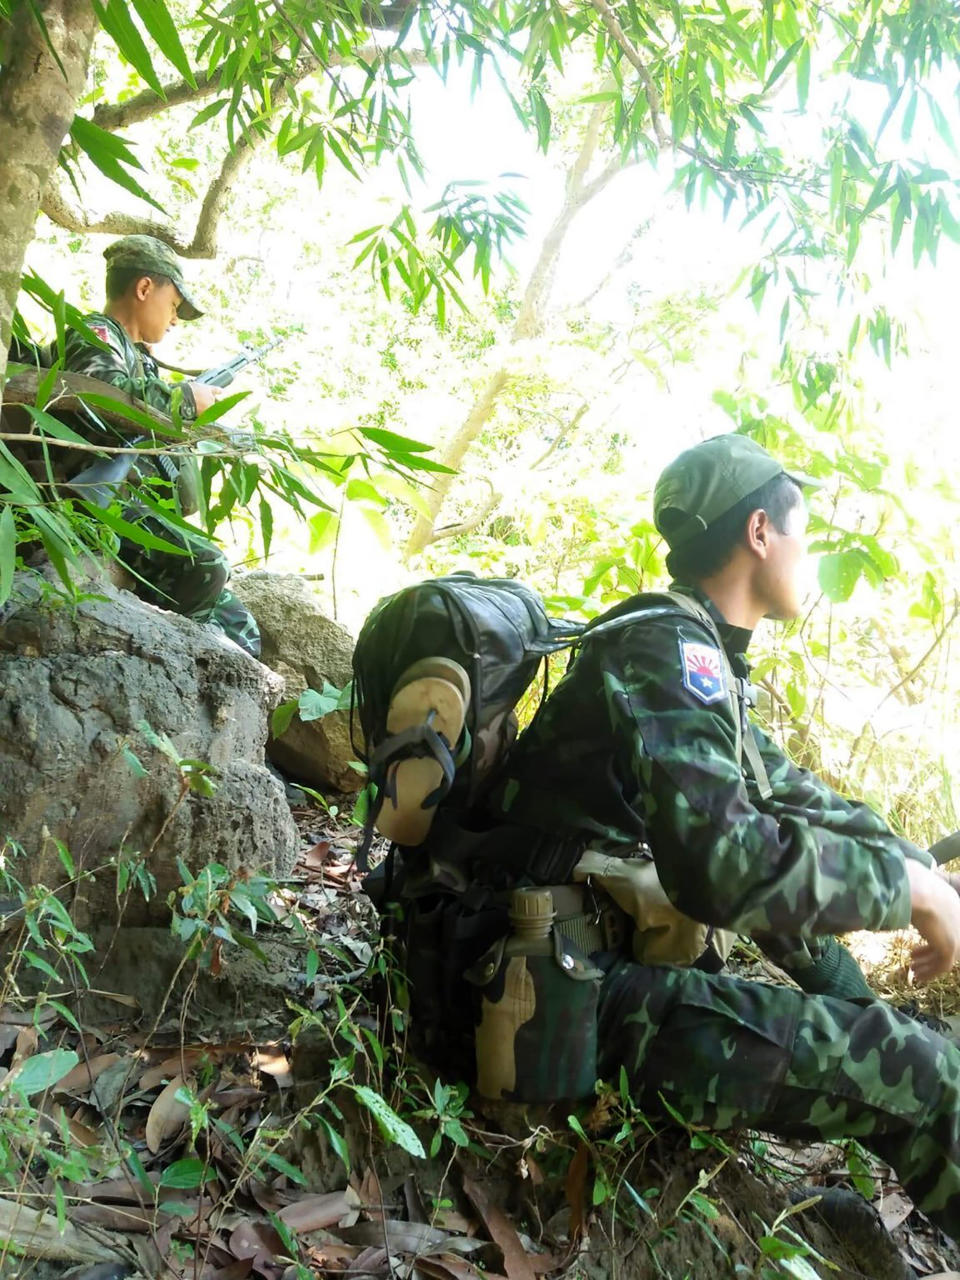 In this photo provided by Karen National Liberation Army, soldiers of the Karen National Liberation Army are seated in a forest Friday, May 7, 2021, in Mutraw district, Karen State, Myanmar. Ethnic Karen guerrillas burned down a Myanmar military outpost Friday morning, capturing it without a fight after its garrison fled at their approach, a senior Karen officer said. (Karen National Liberation Army via AP)